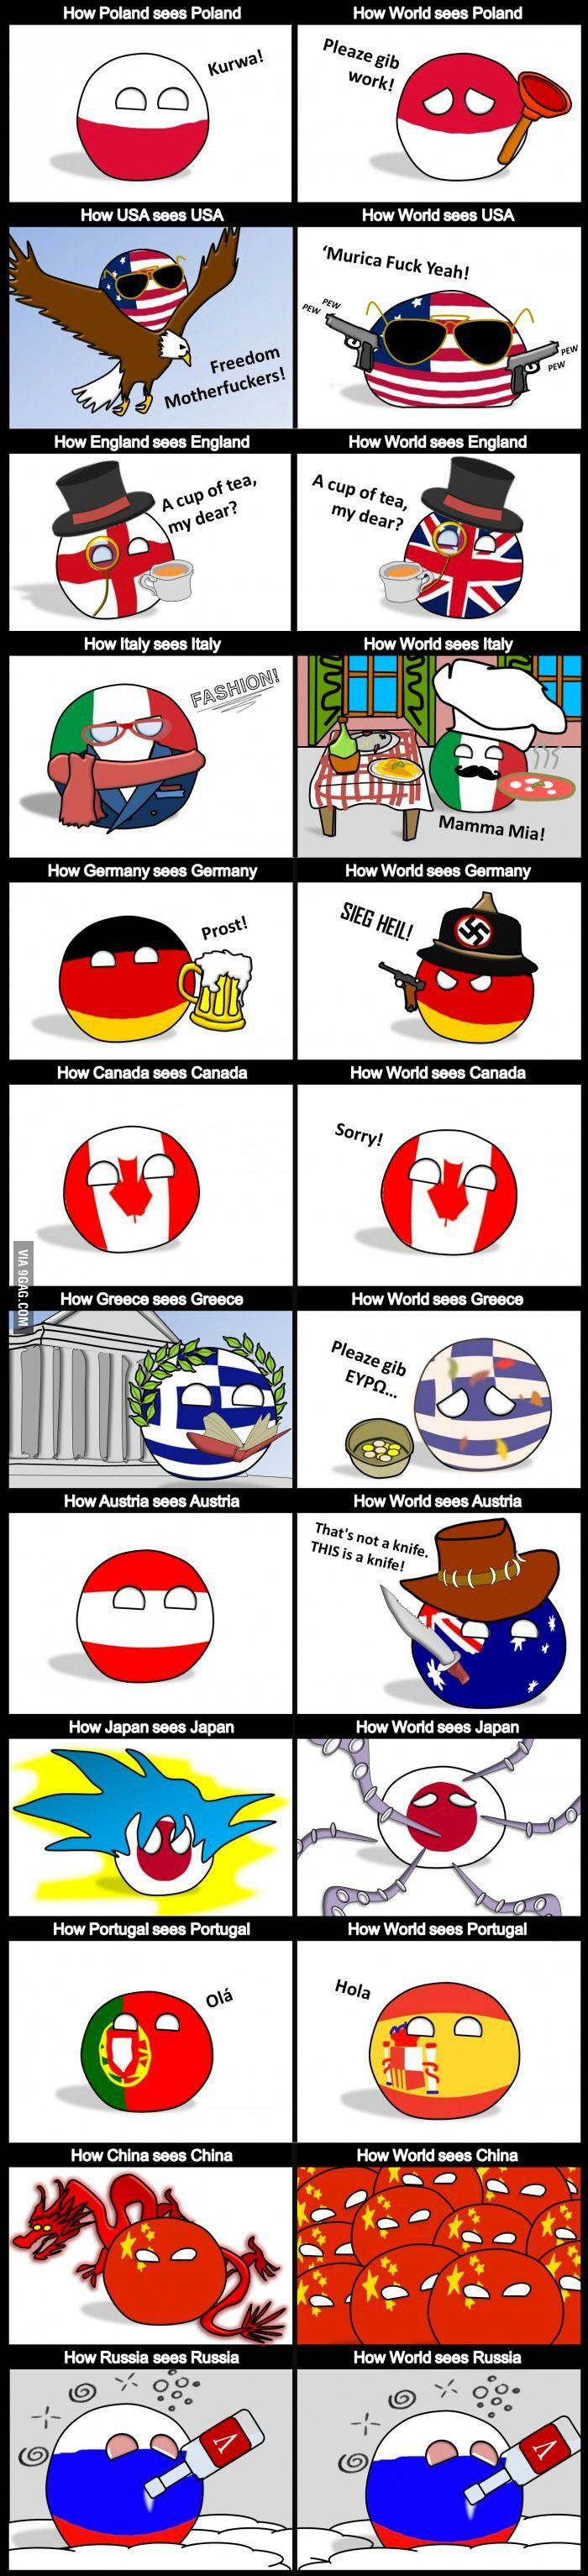 How Countries Think They Are Compared To How The World See Them Australia Funny Country Jokes Hetalia